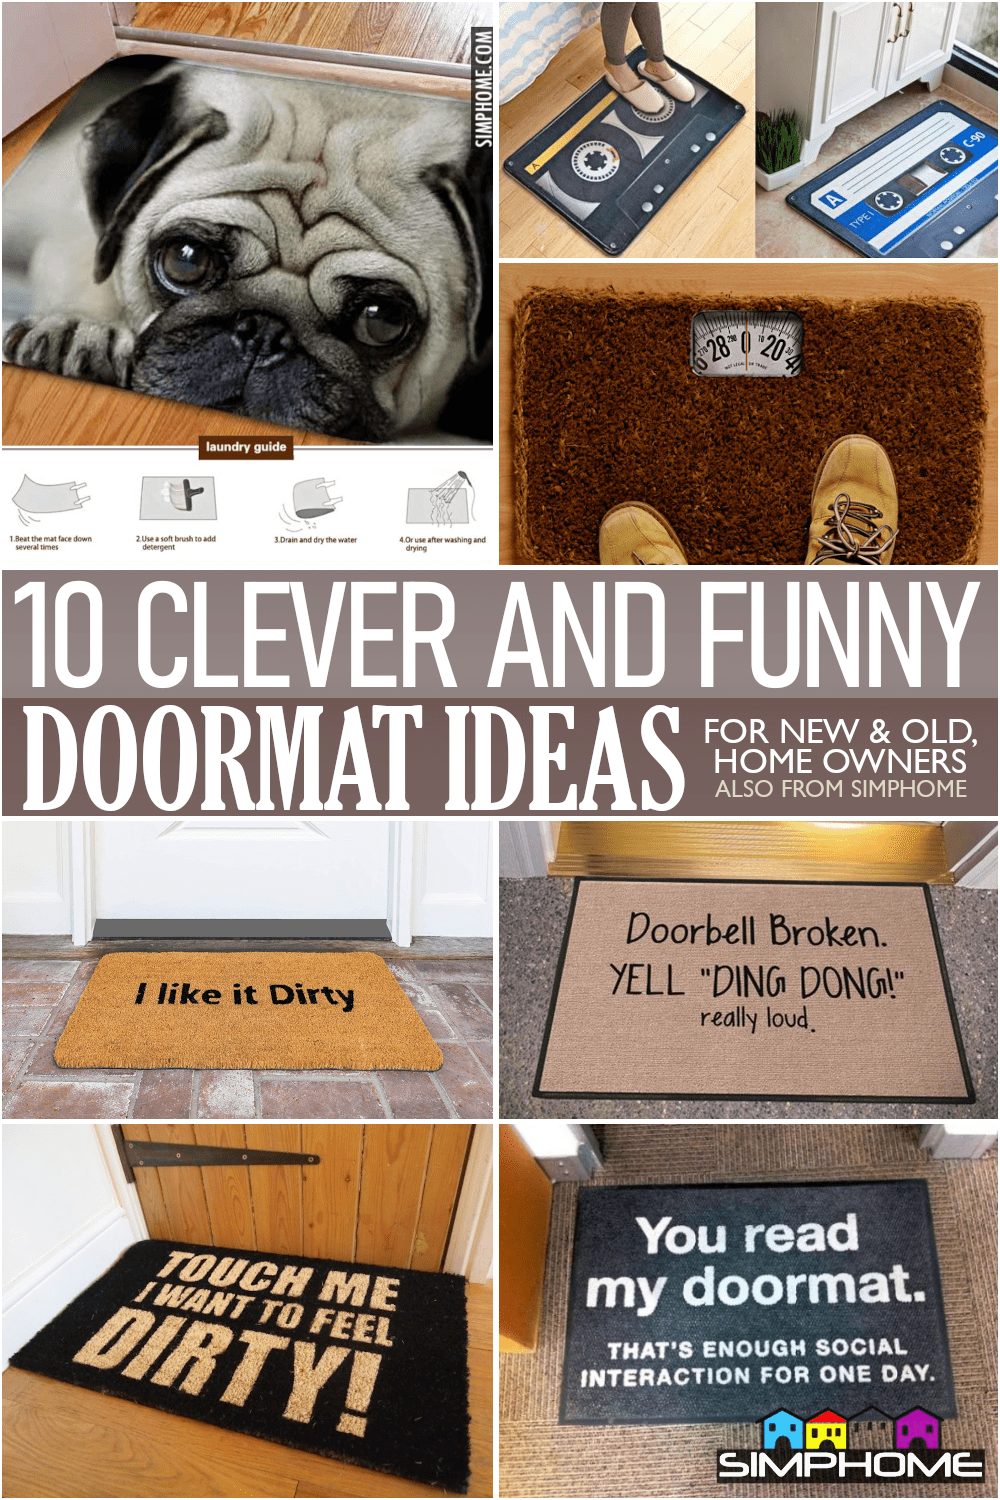 10 Doormat Ideas Unique Clever and Funny via Simphome.comFeatured